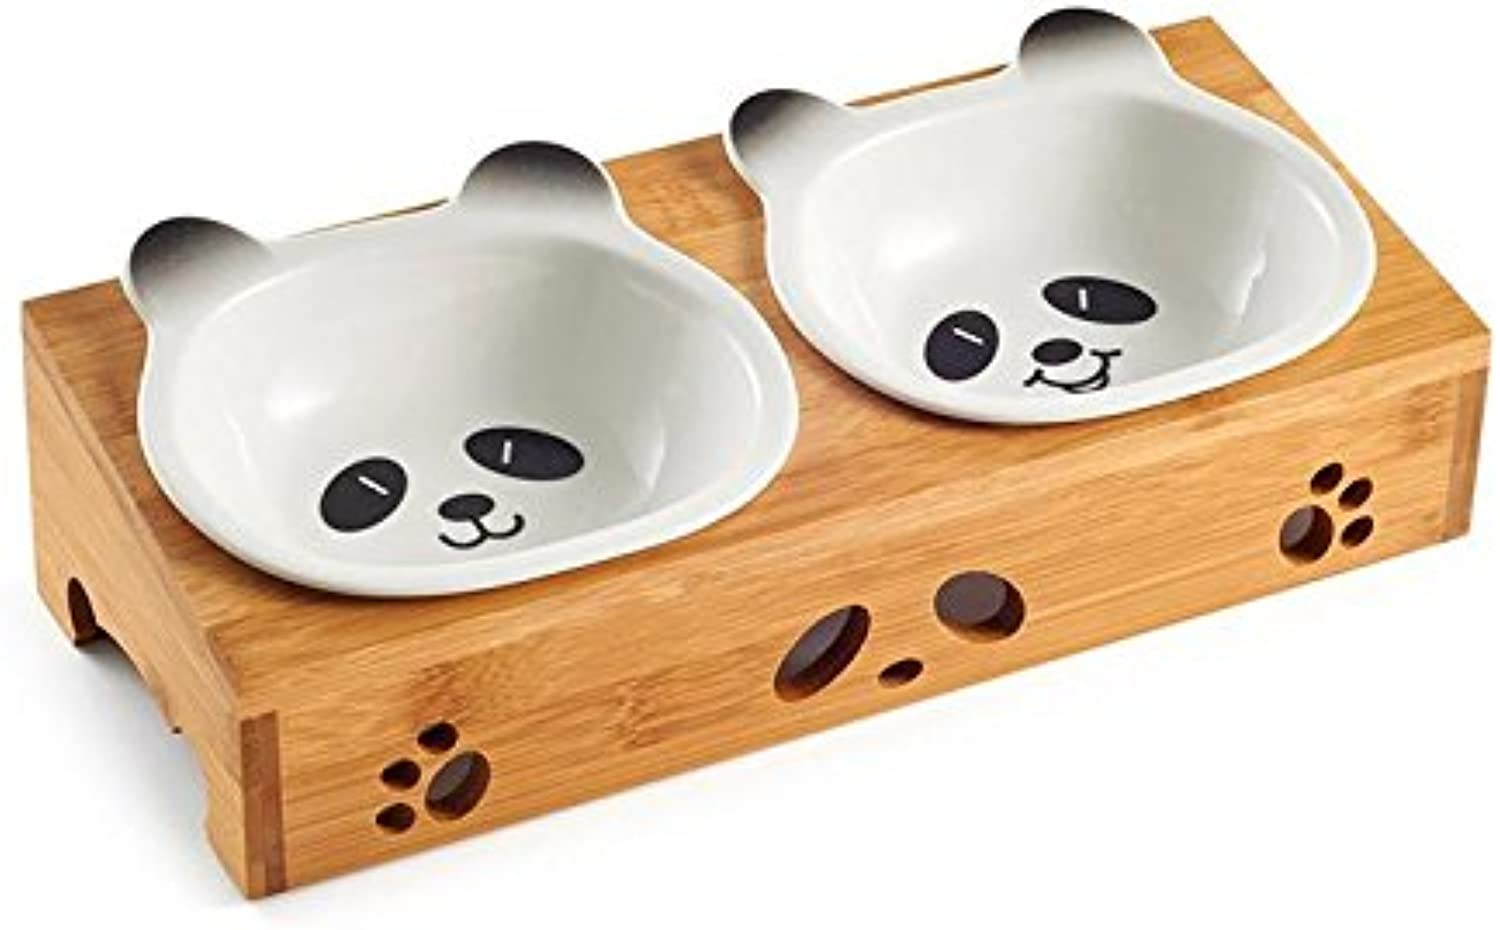 Fishagelo Ceramic Pet Bowl with Sturdy Bamboo Stand for Food and Water Bowls Pet Feeders Double Bowls Fishagelo (color   color Black+White)